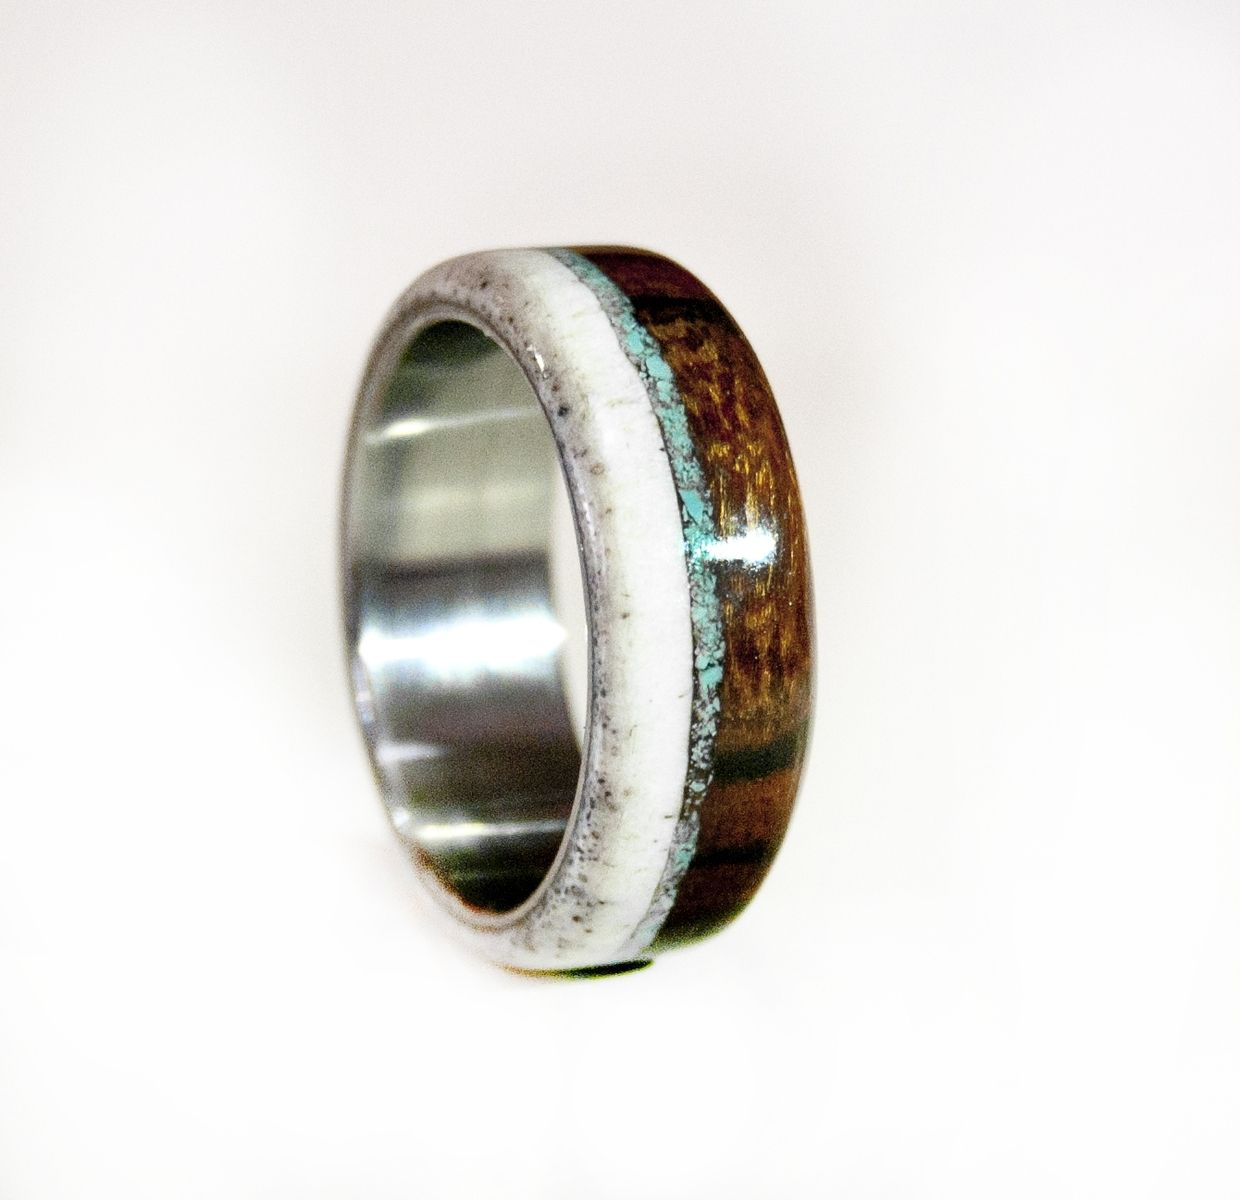 Titanium Ring Turquoise Ring Wedding Ring Mens Ring Womens